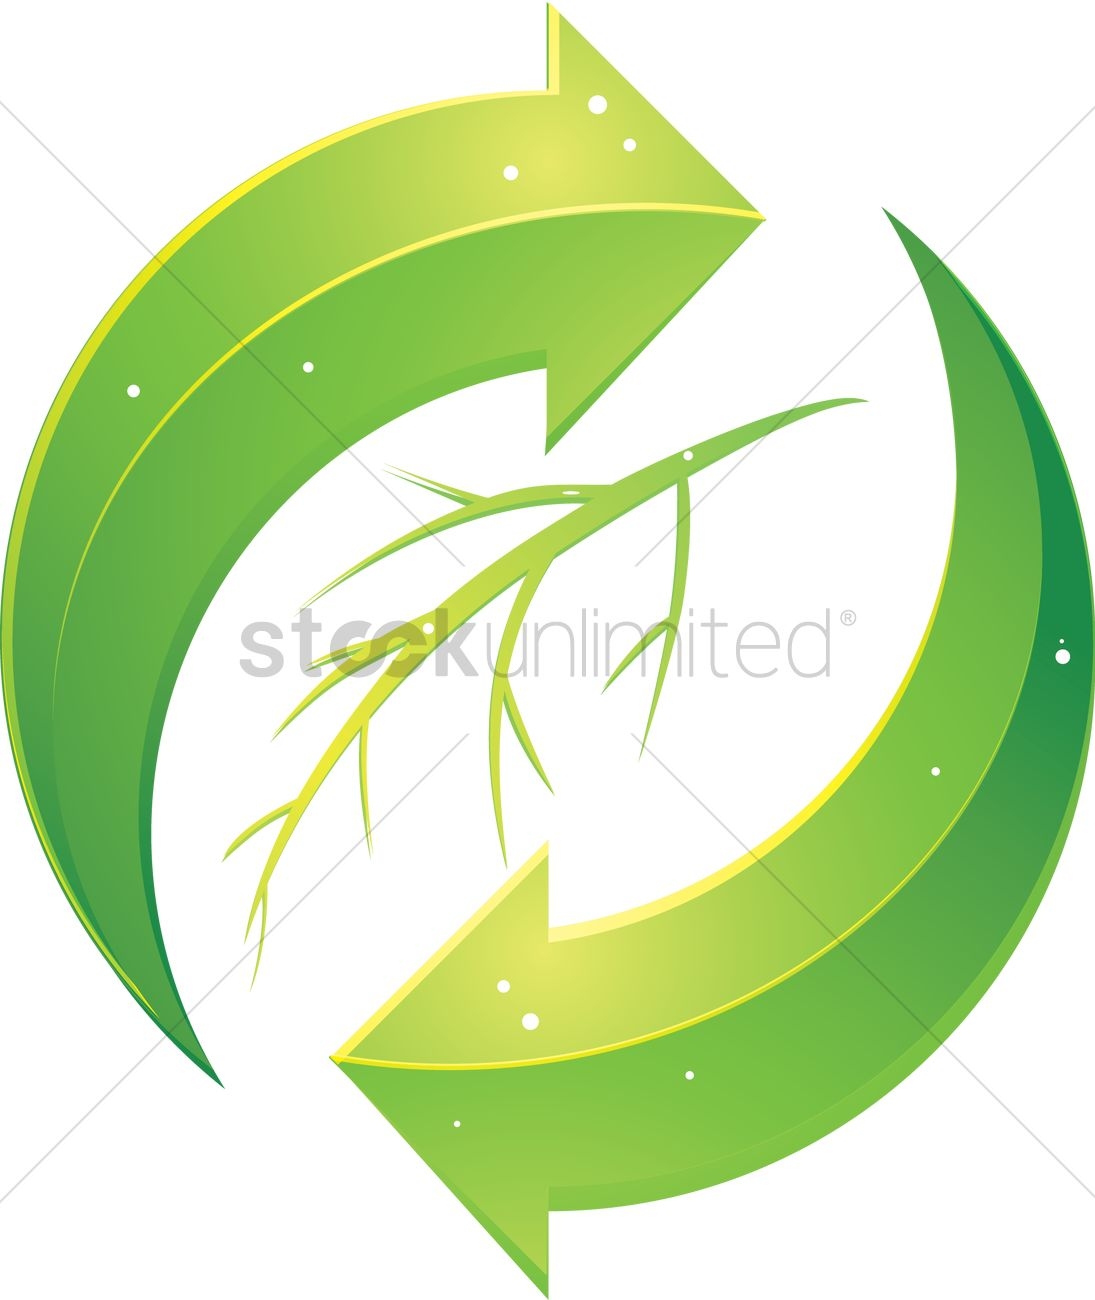 Recycling Symbol With A Branch In The Middle Vector Image 1238976